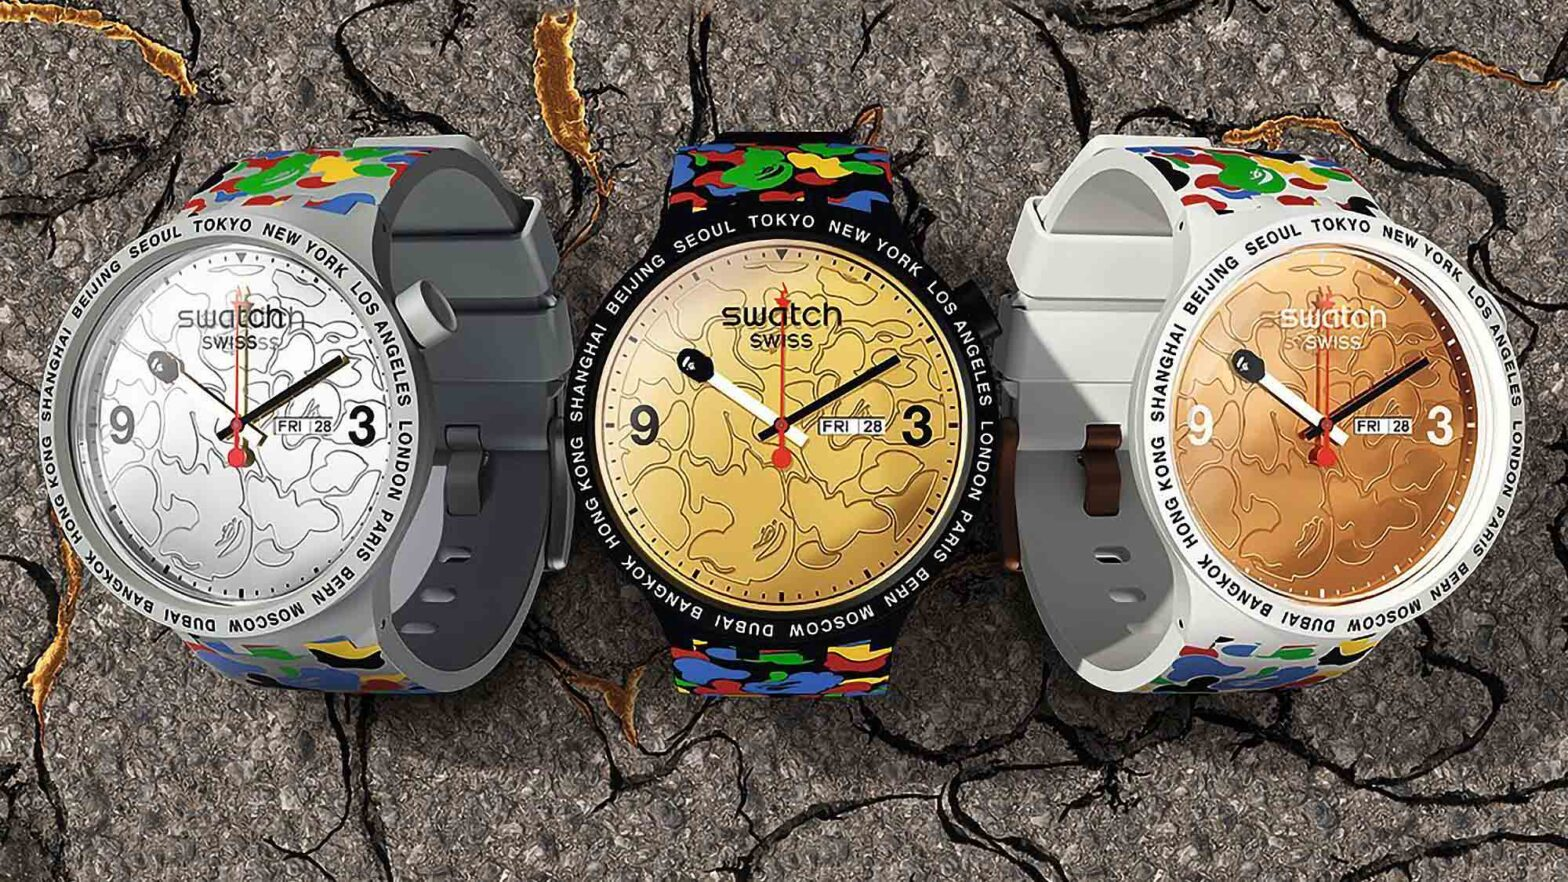 Swatch x BAPE Wrist Watch Collection